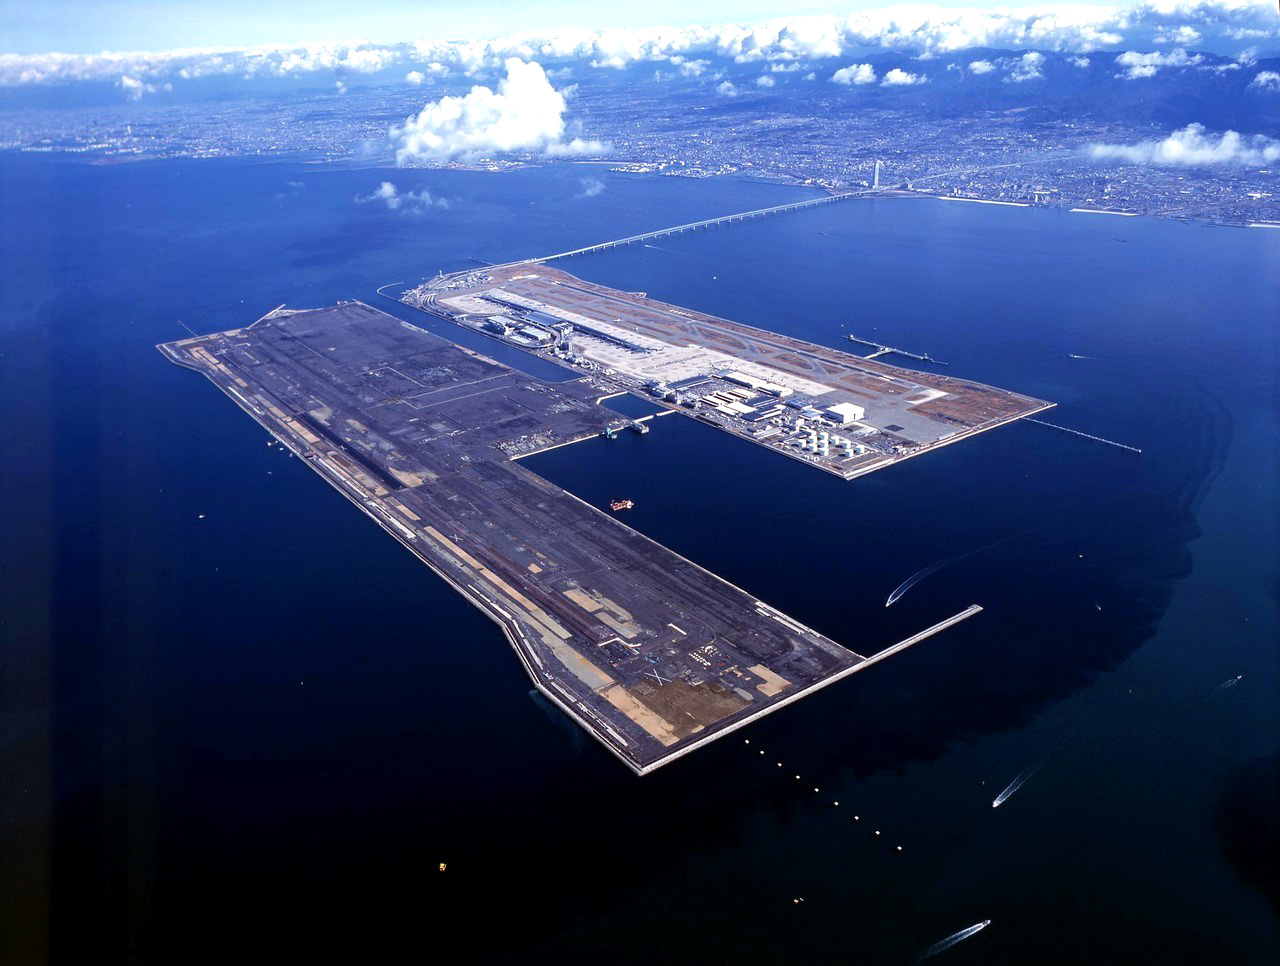 Kansai International Airport, Japan